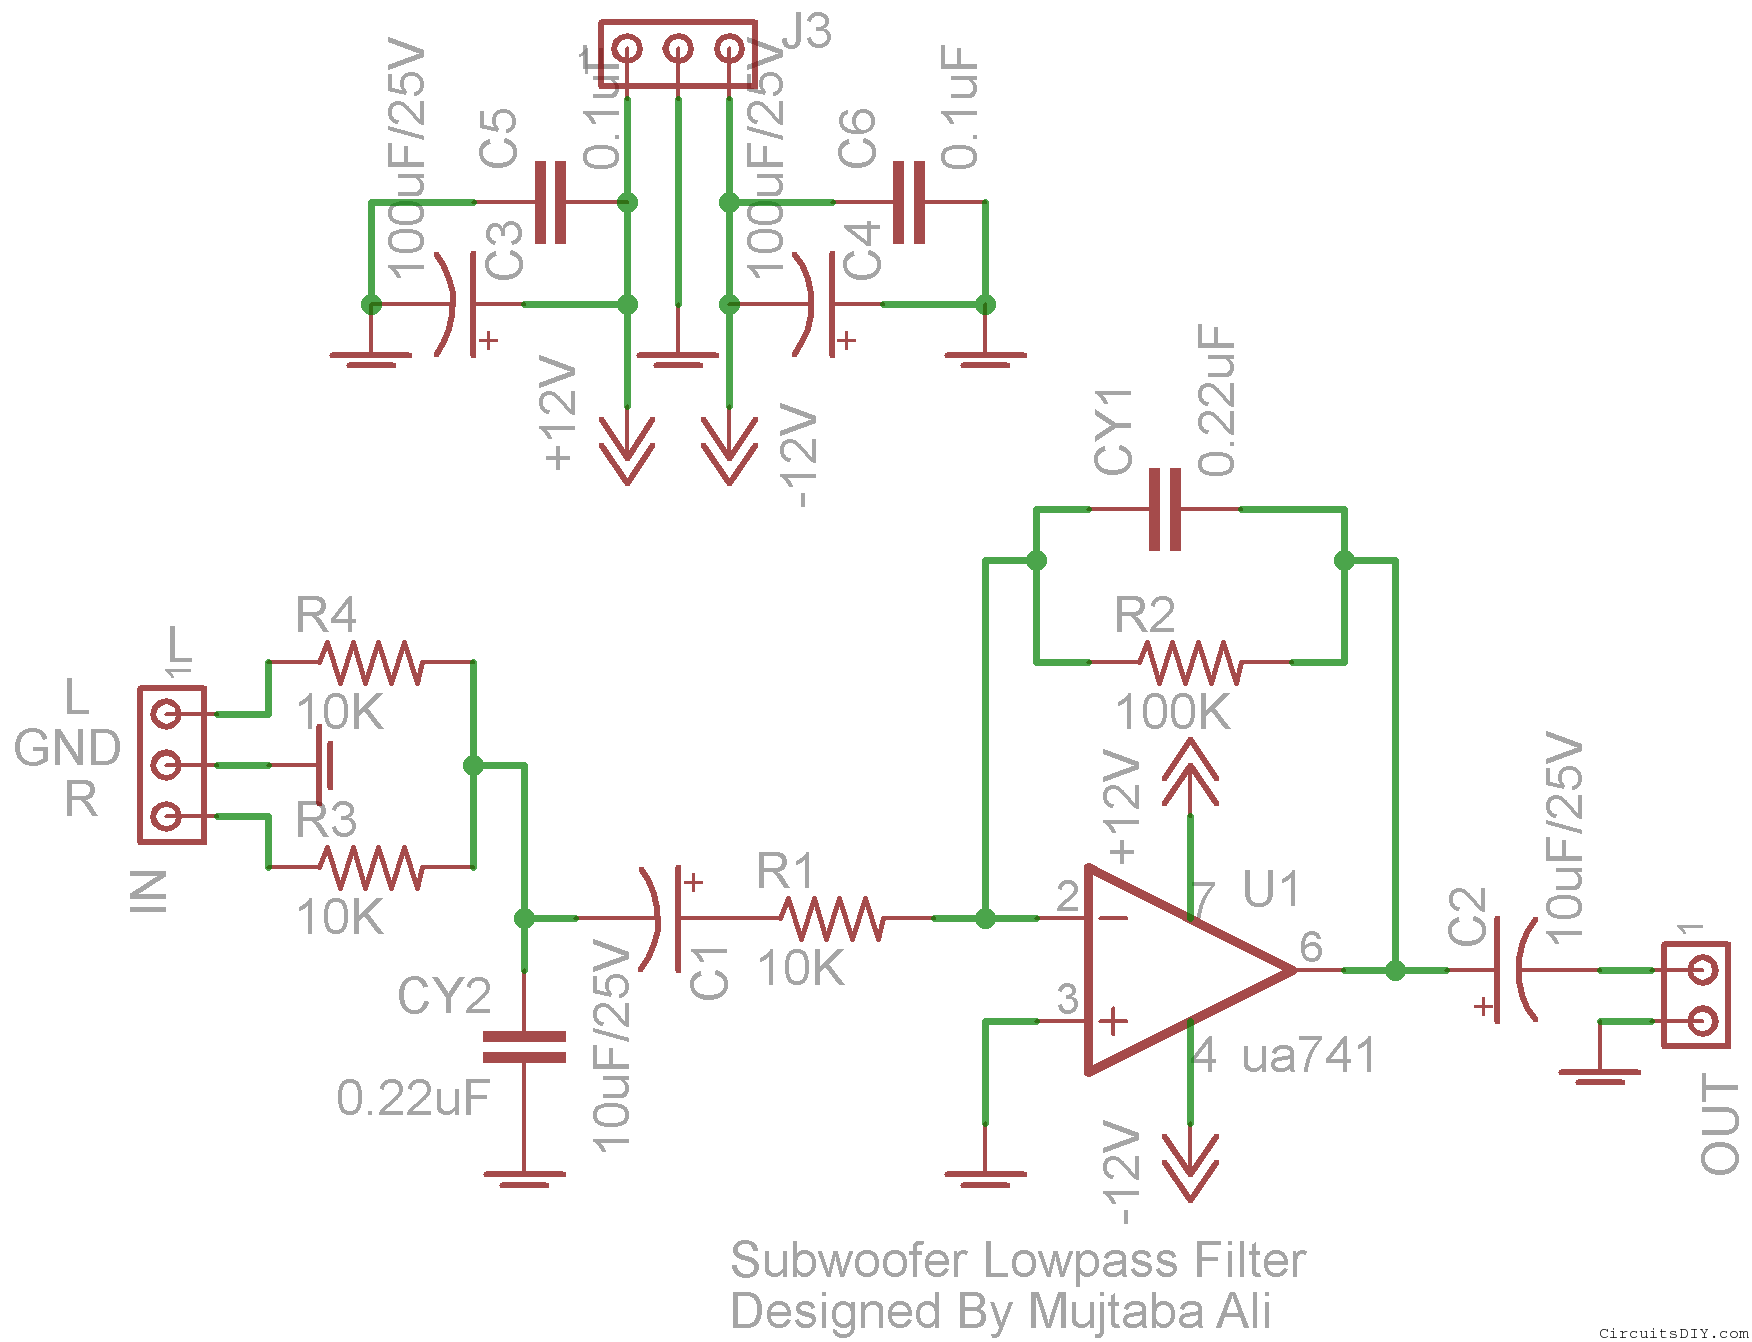 subwoofer lowpass filter circuit using ua741 single op amp ic 1 amp of circuit diagram low pass subwoofer circuit diagram